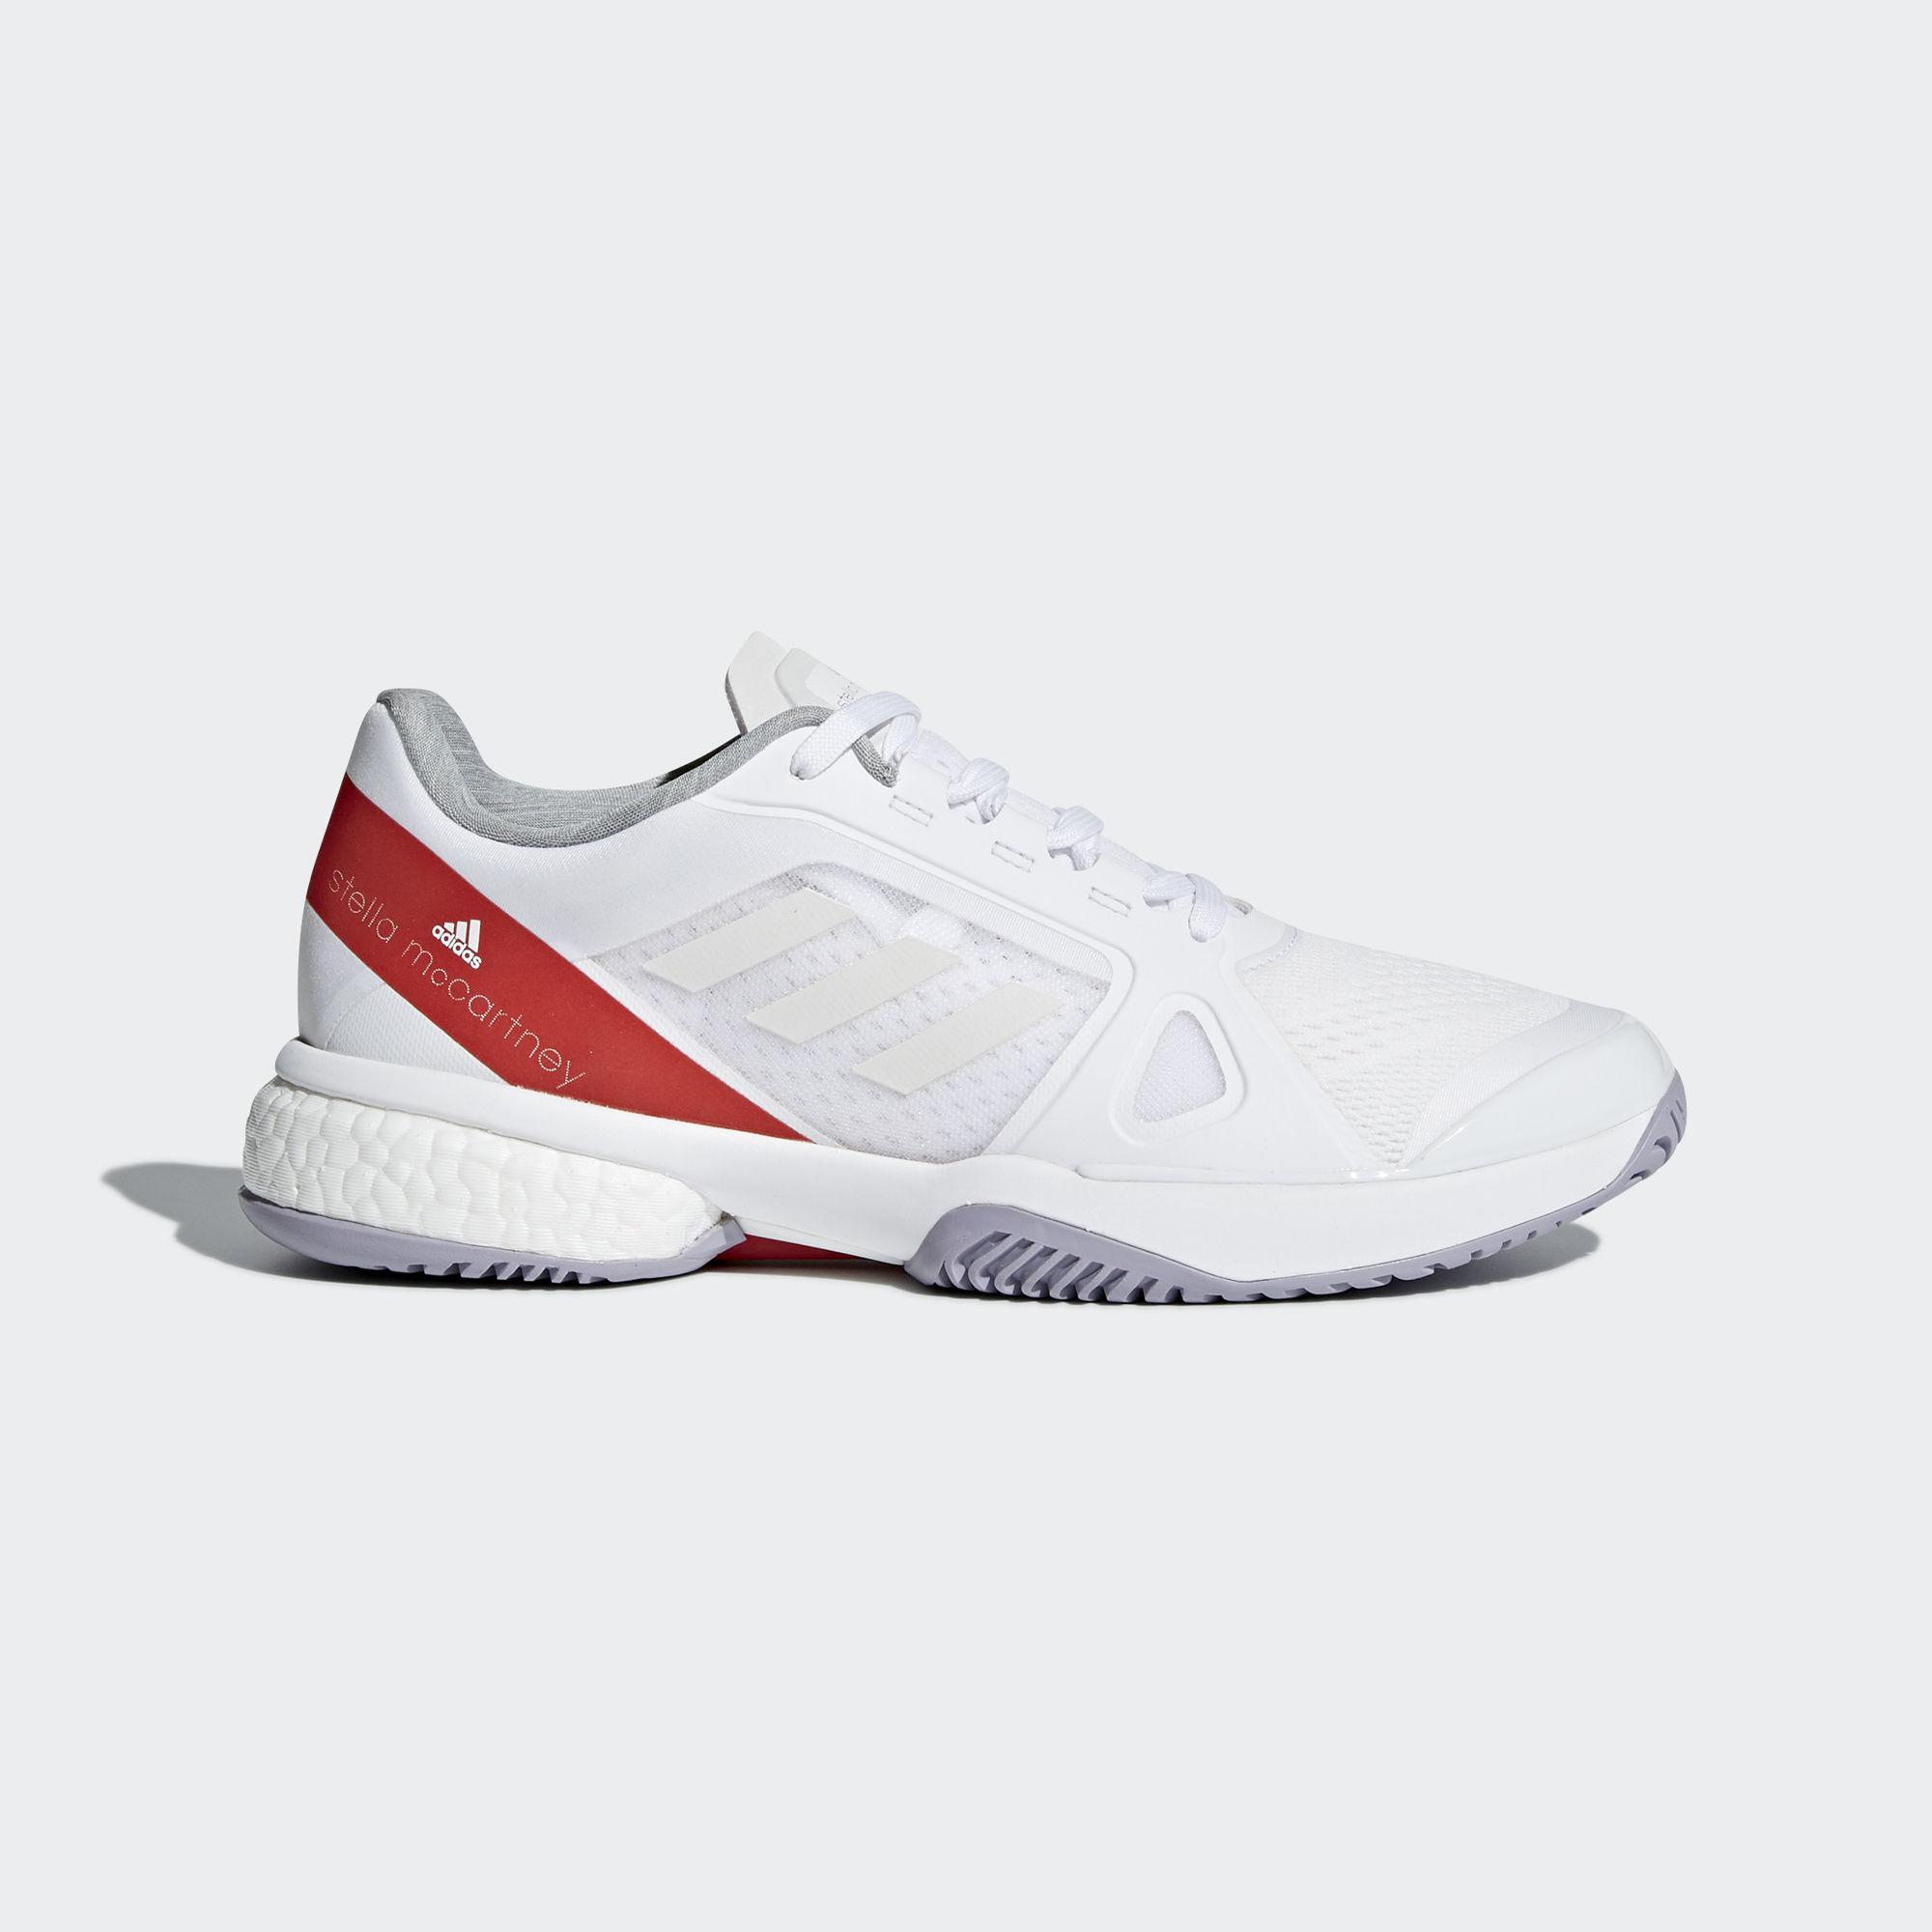 c91253ae9f1c3 Adidas Womens SMC Barricade Boost 2018 Tennis Shoes - White Silver -  Tennisnuts.com